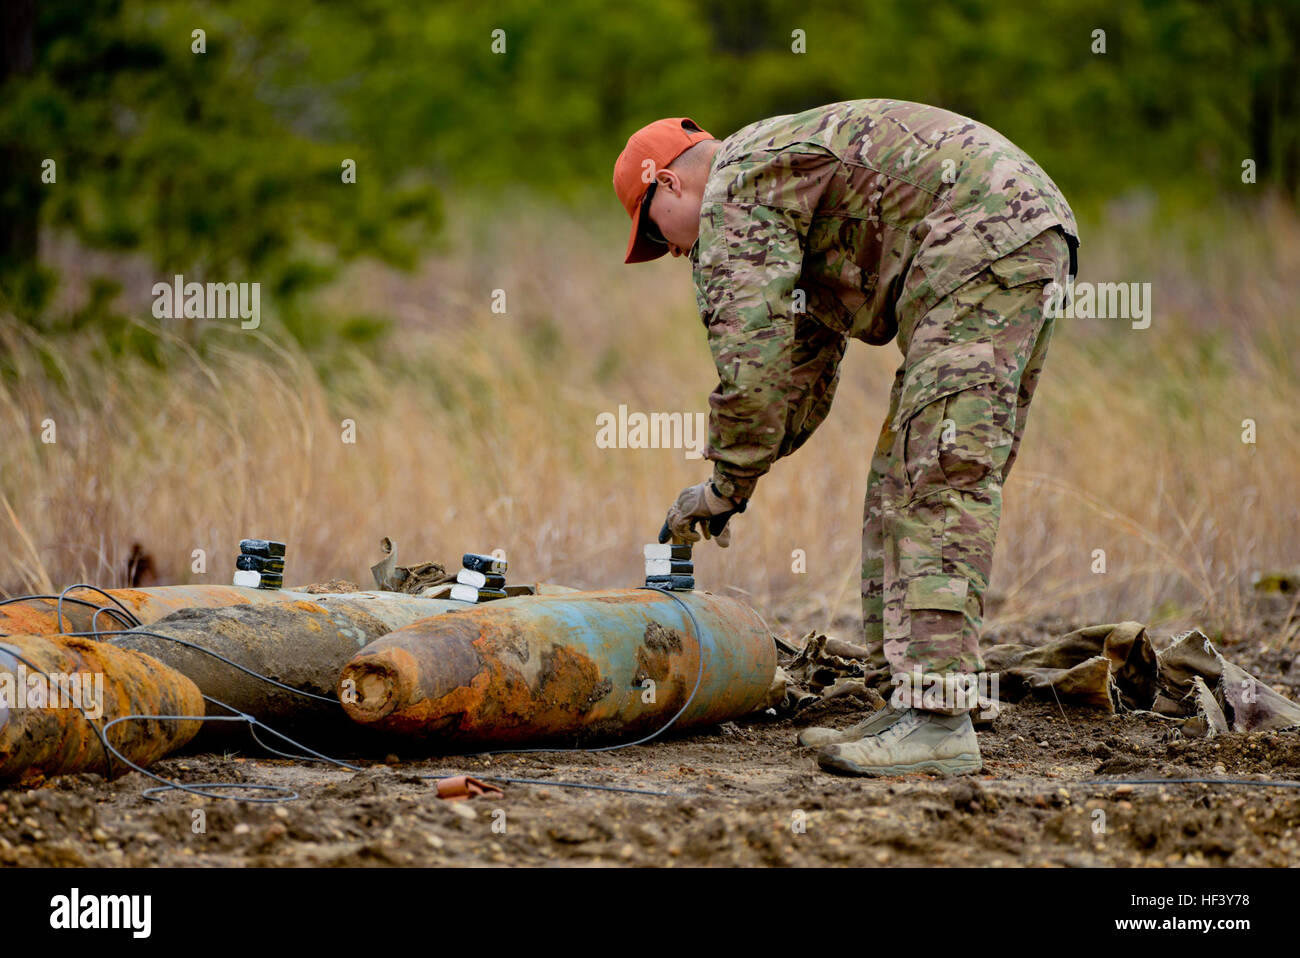 U.S. Air Force Airman 1st Class Michael Glisan, Explosives Ordnance  Disposal Technician with the 87th